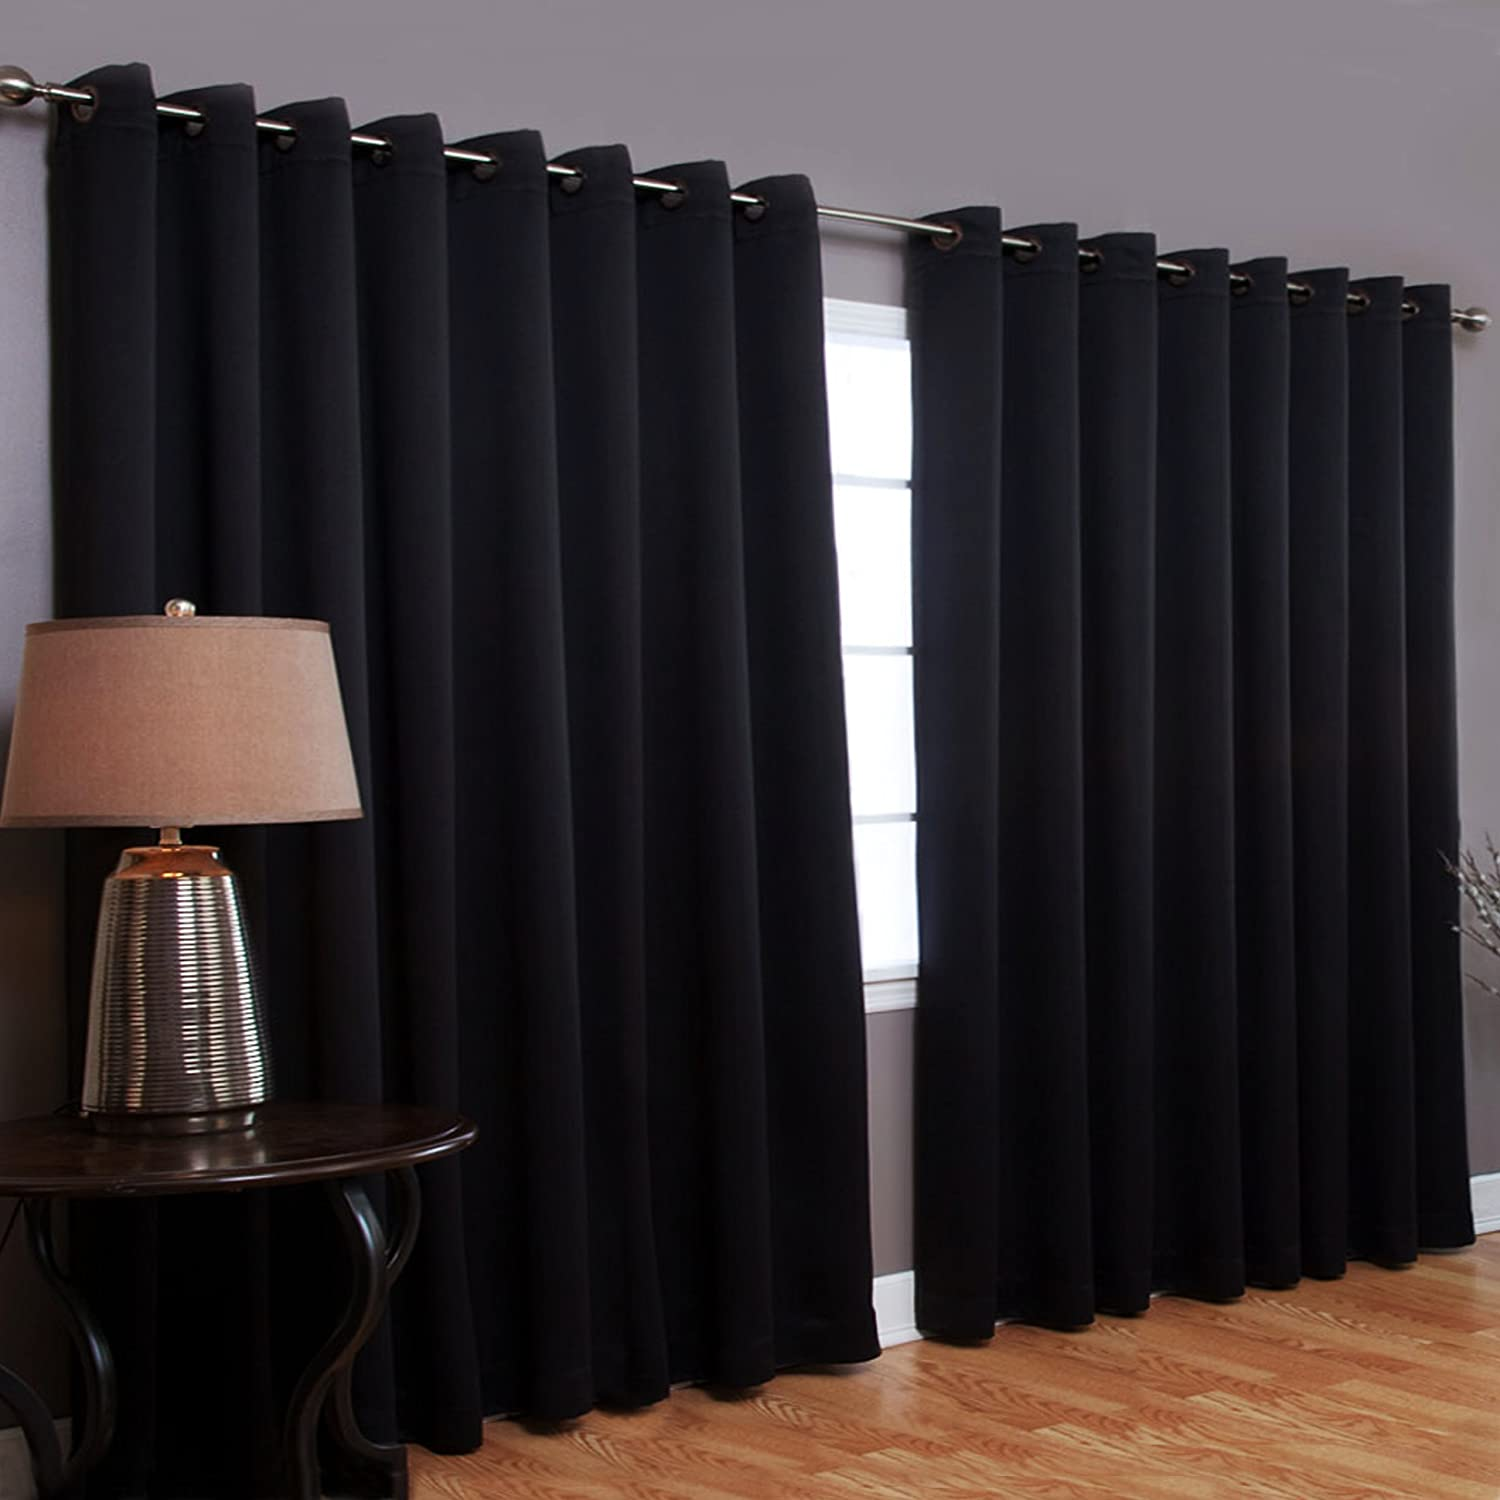 Best Home Fashion Thermal Blackout Curtain With Wide Width Grommet Top 100 By 9